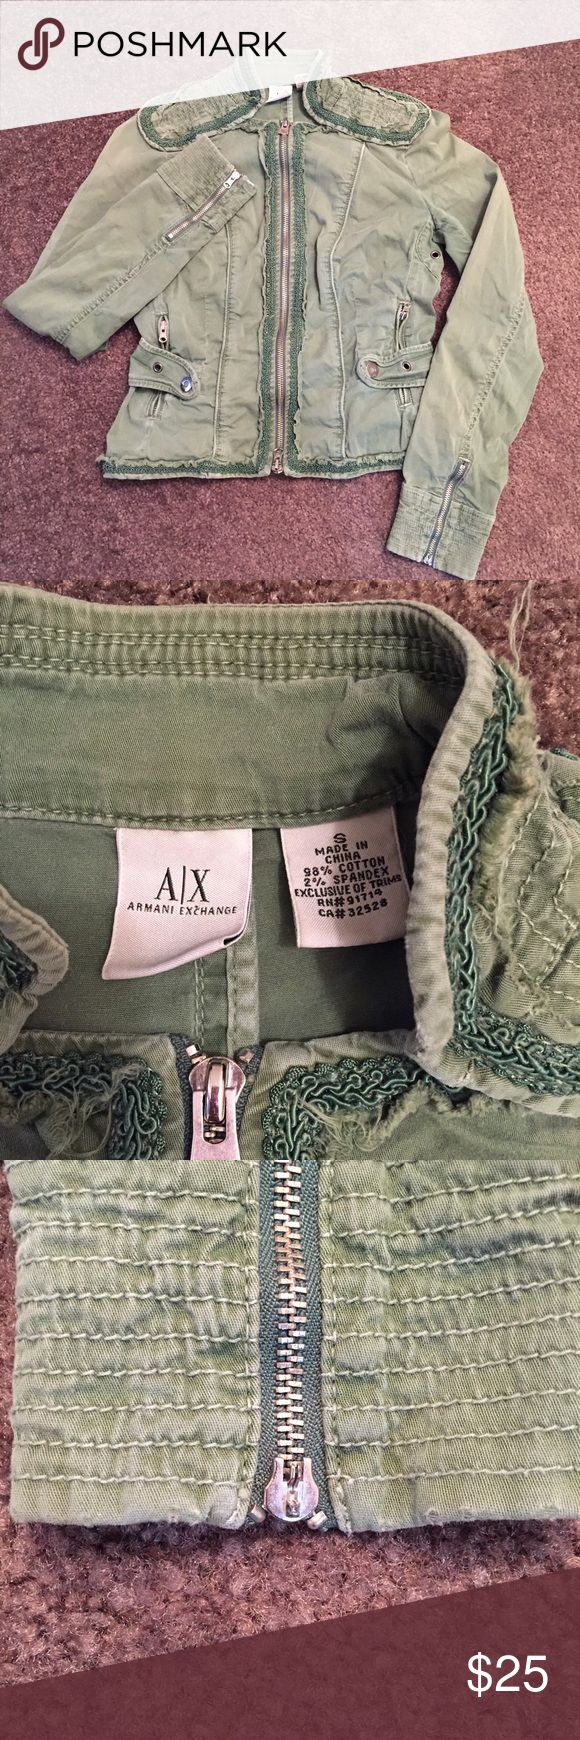 Armani Exchange Green Military Style Jacket One of the sleeves has a missing zipper pull but the zipper itself is still functioning. Otherwise jacket is in great condition. It does run a little snug and form fitting. Armani Exchange Jackets & Coats